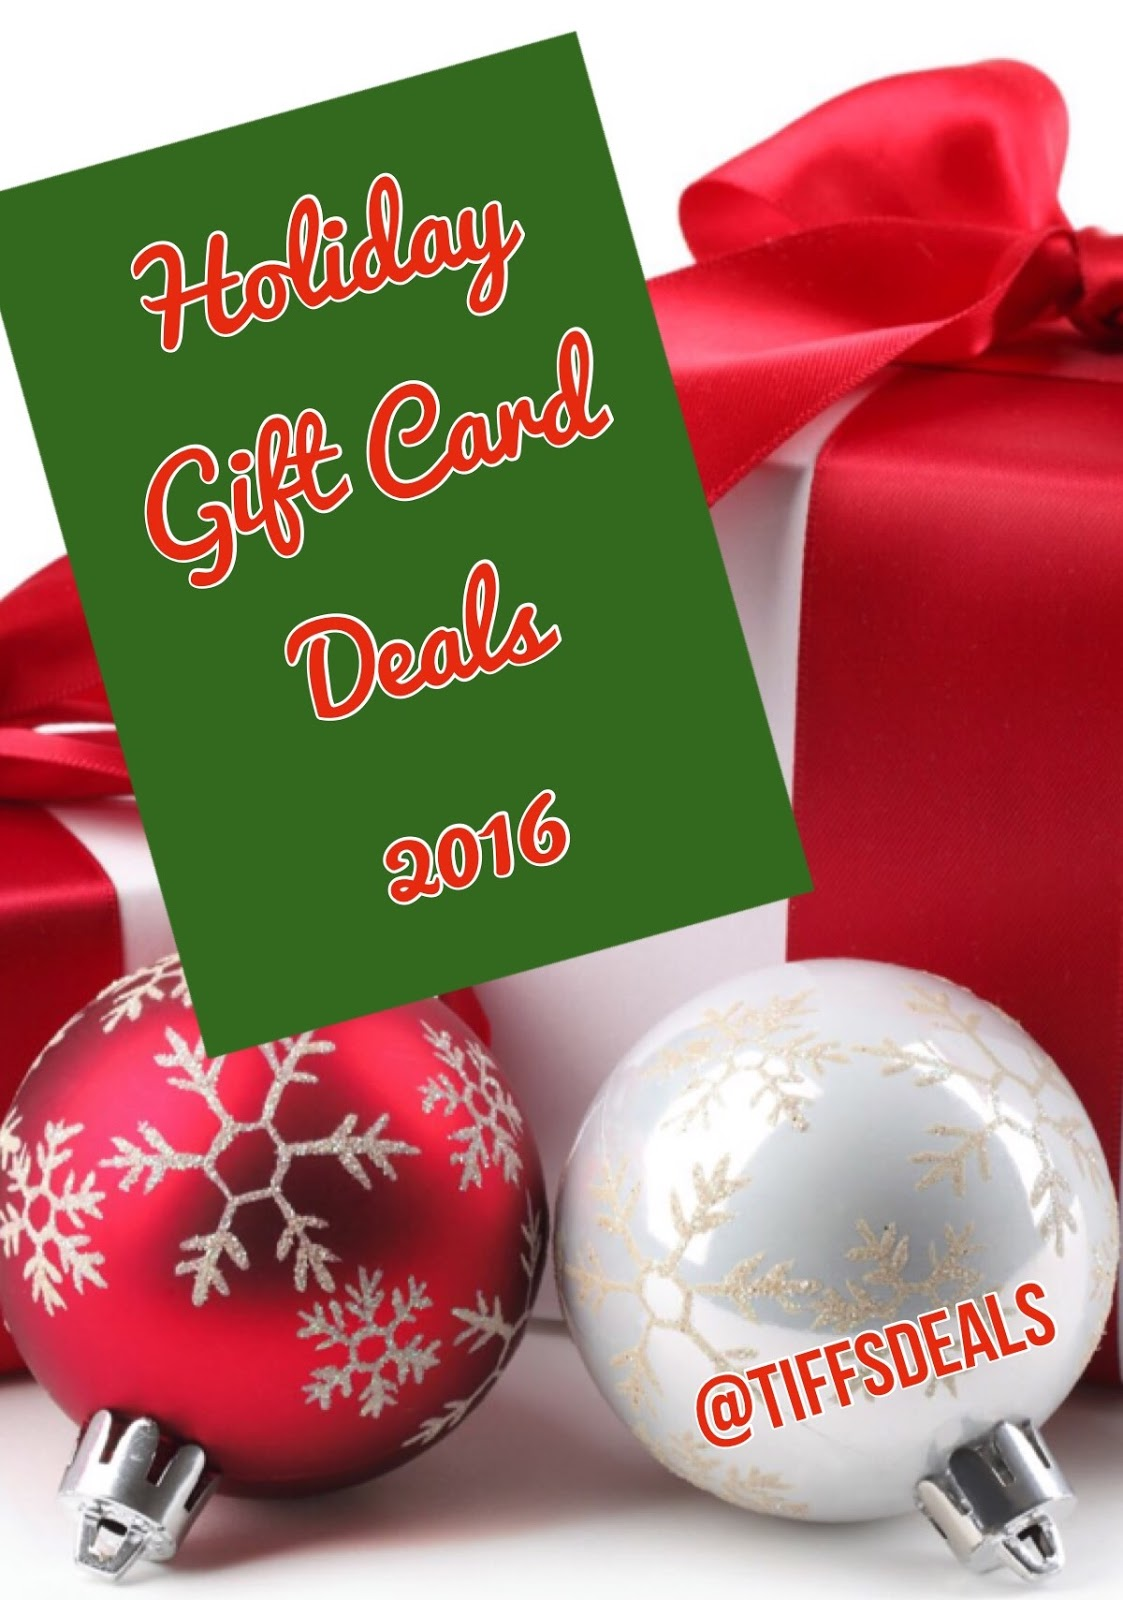 Tiff\'s Deals - NOLA and National Savings: Holiday Gift Card Deals ...